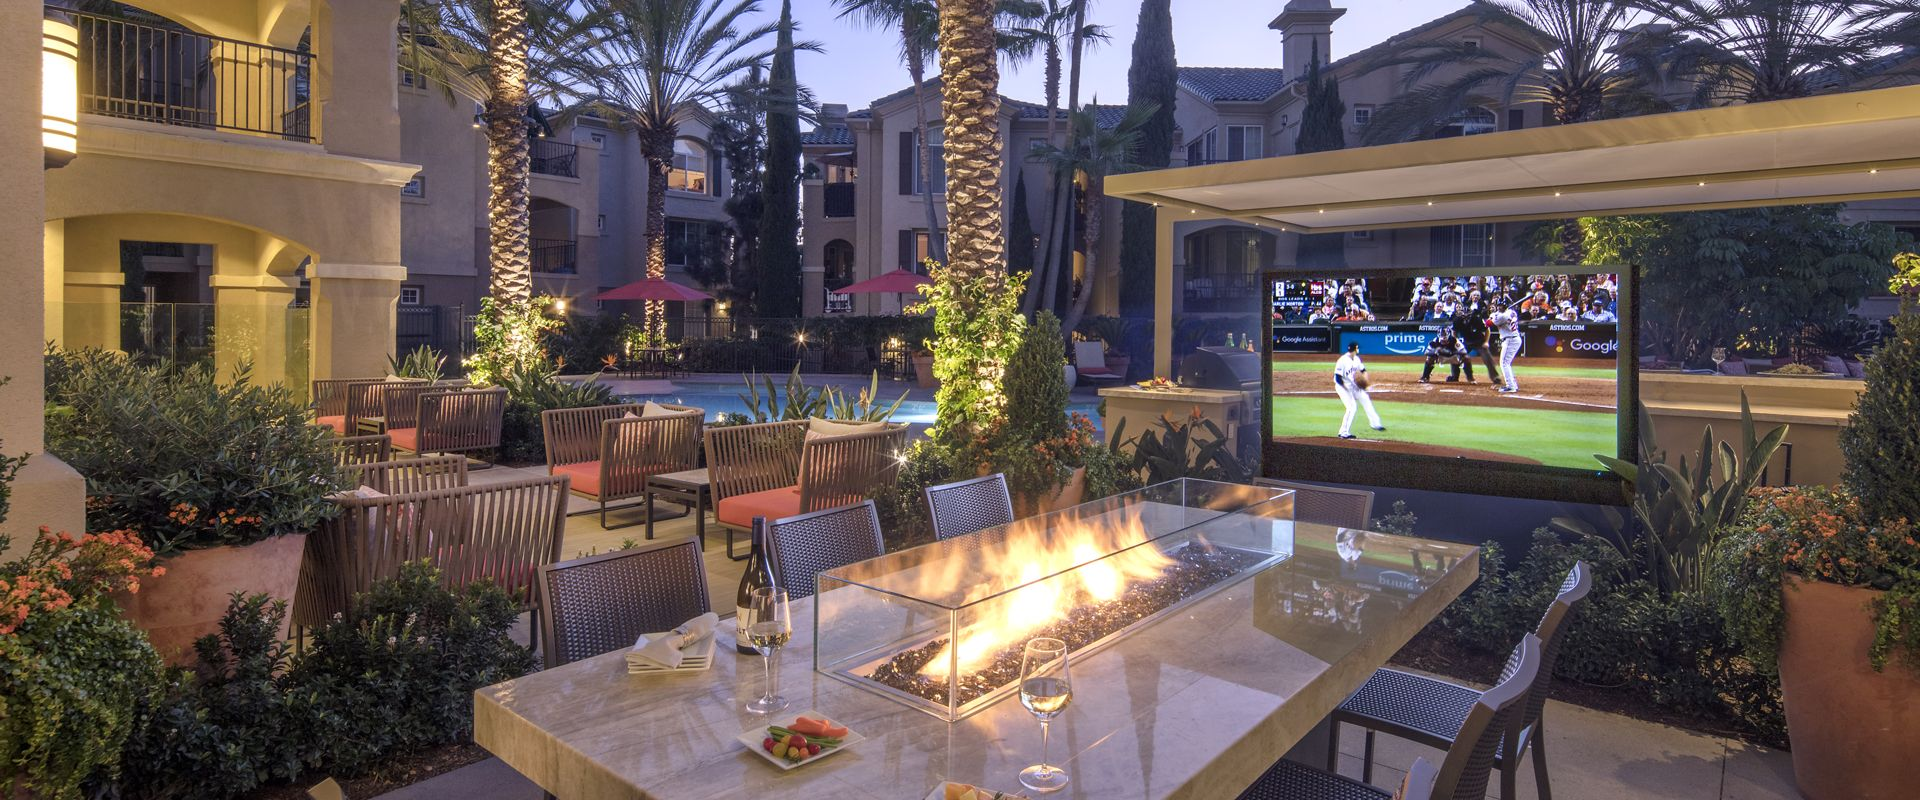 Exterior view of outdoor patio area at Torrey Villas Apartment Homes in San Diego, CA.